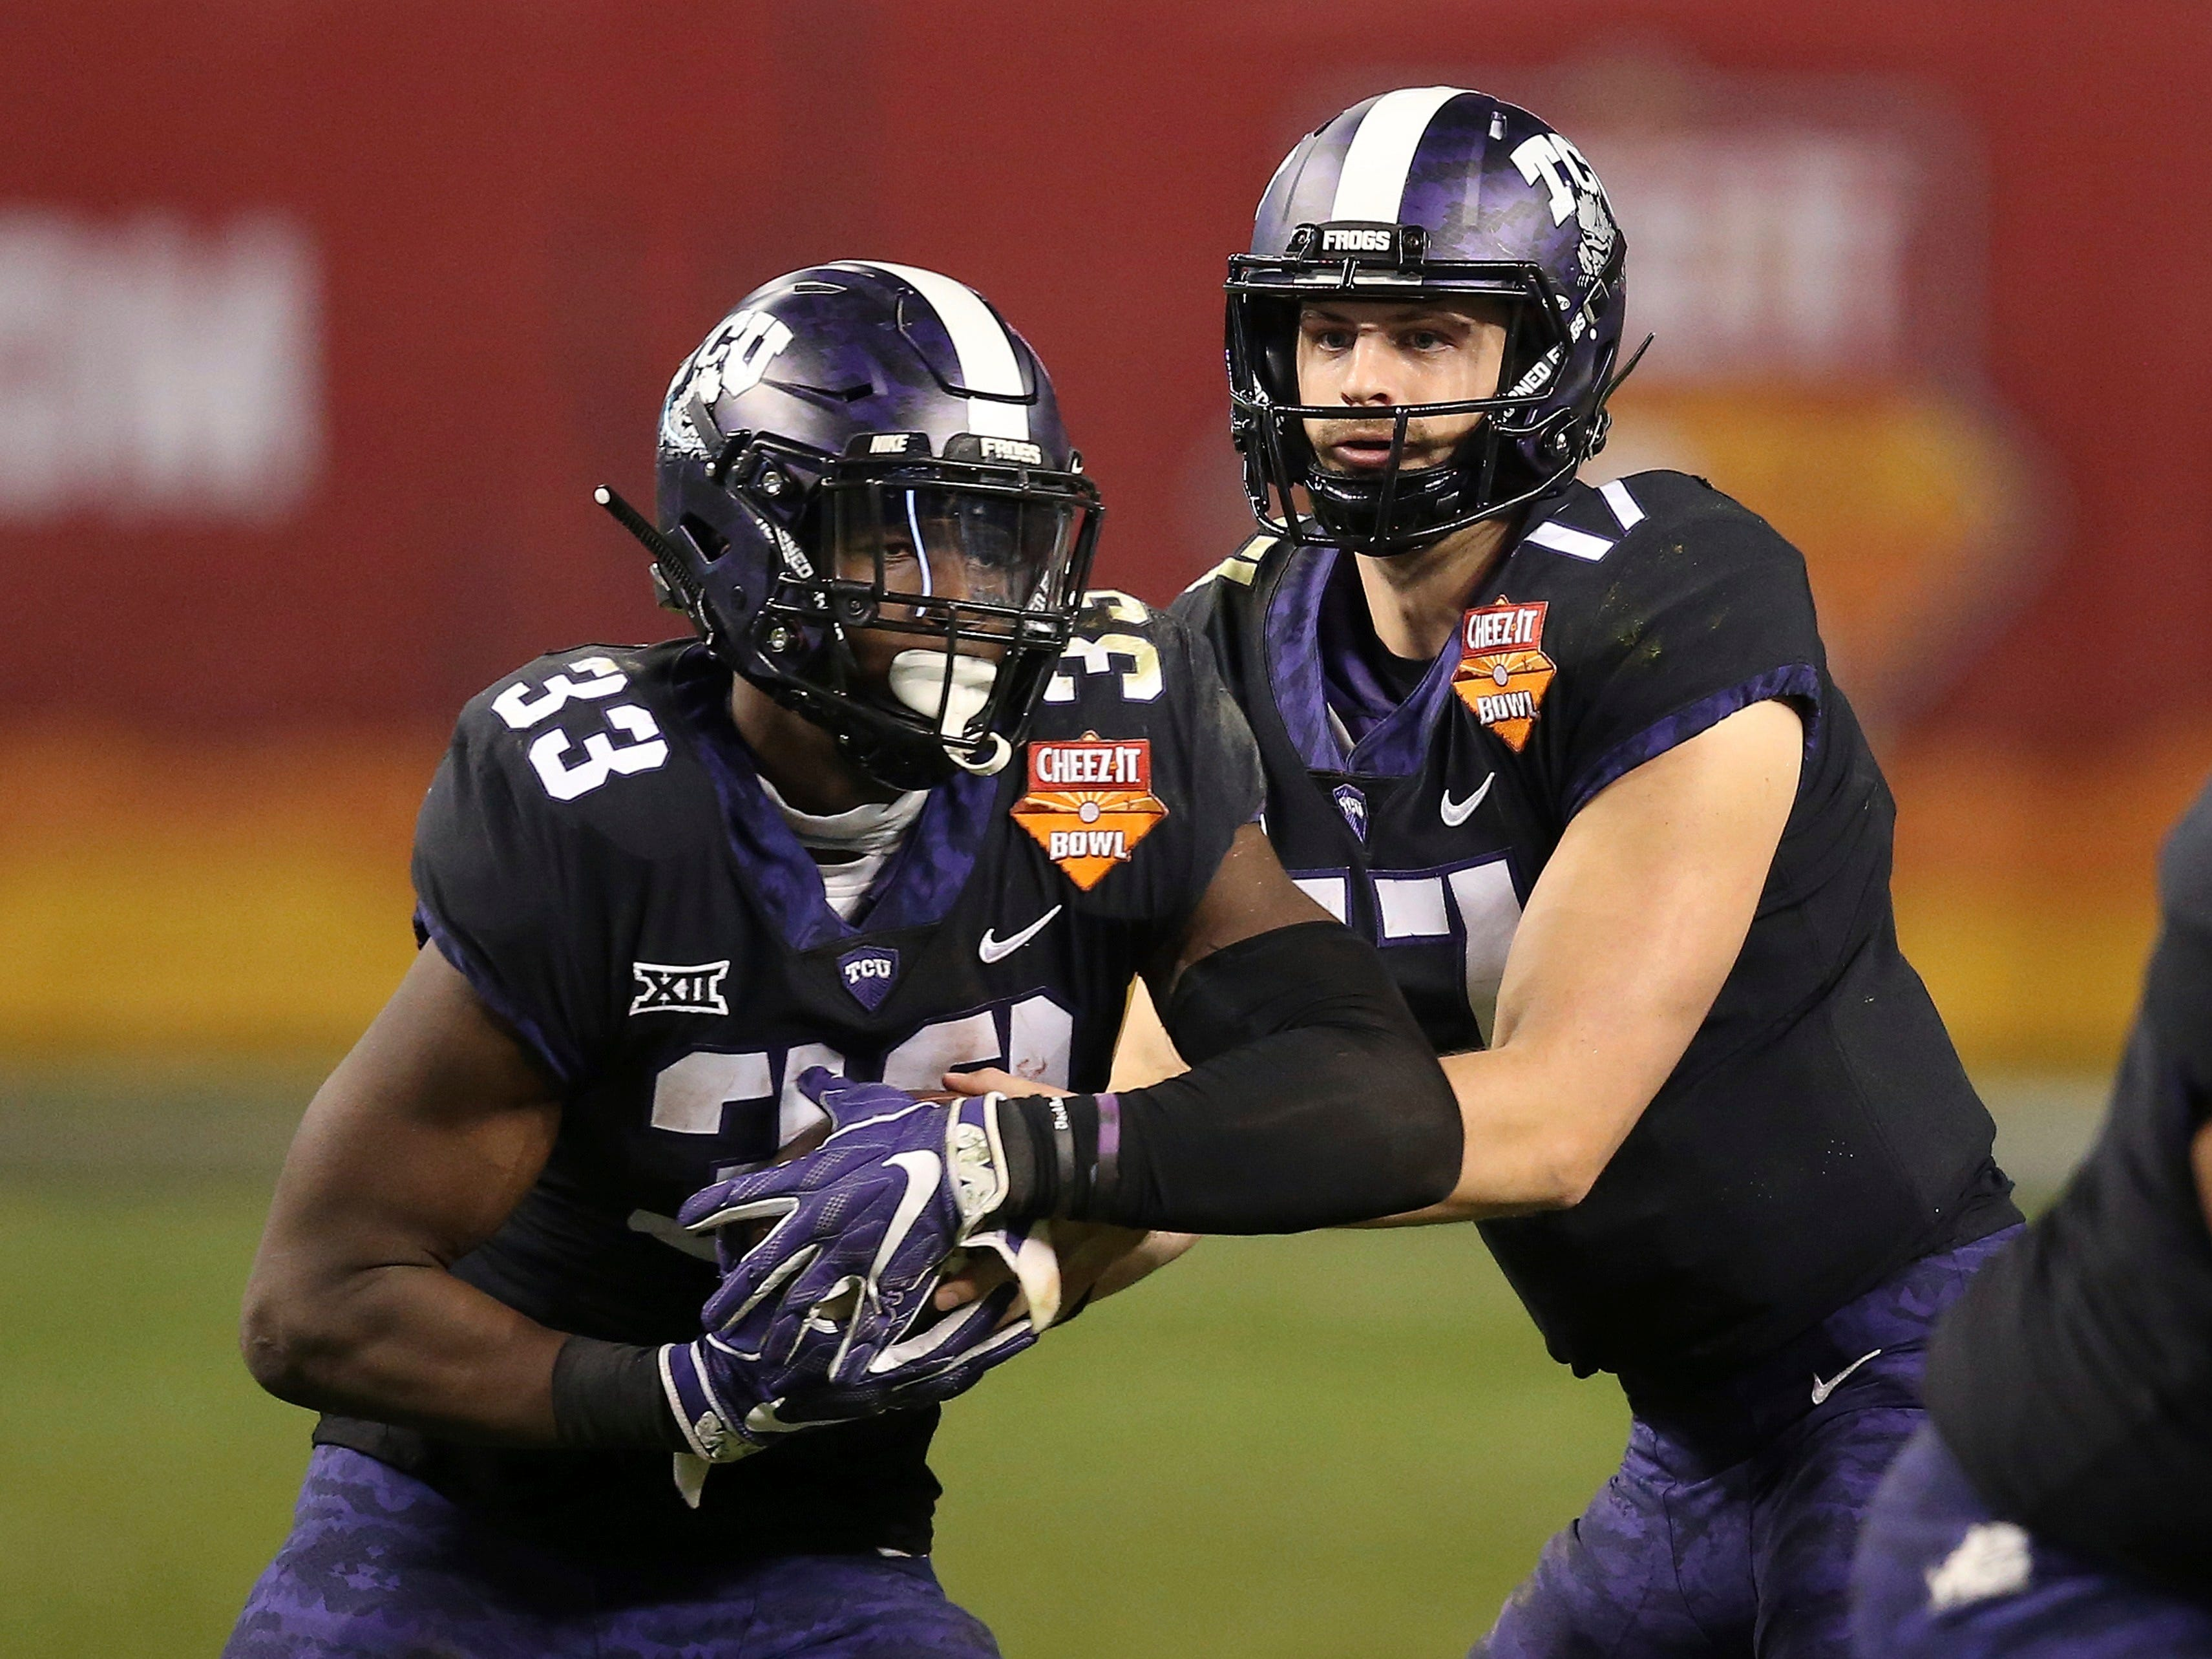 TCU running back Sewo Olonilua (33) takes a handoff from quarterback Grayson Muehlstein (17) during the second half of the Cheez-It Bowl NCAA college football game against California Thursday, Dec. 27, 2018, in Phoenix. TCU defeated California 10-7 in overtime.